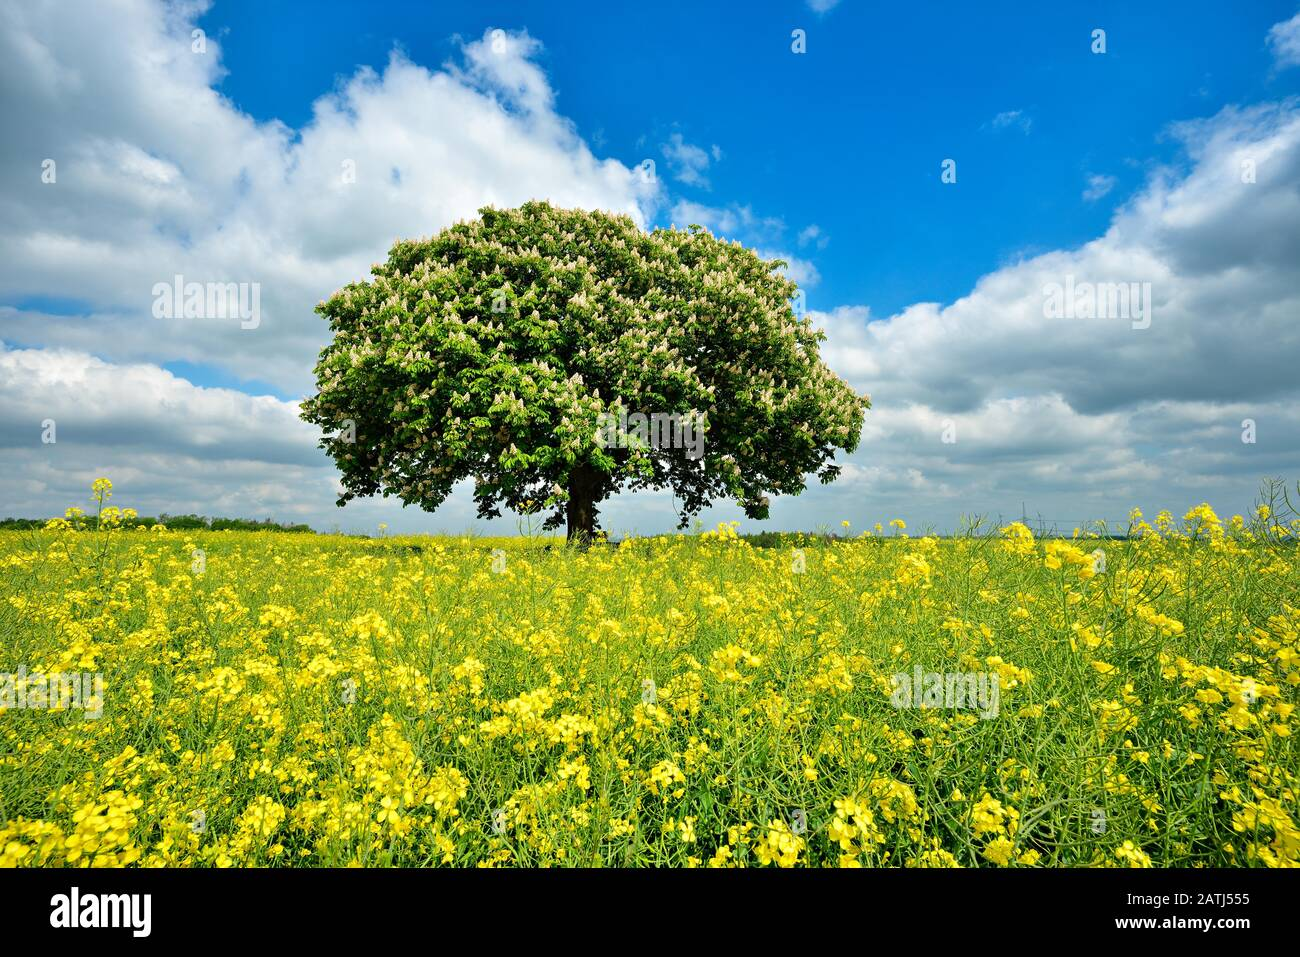 Flowering horse chestnut (Aesculus) in flowering rape field under blue sky with clouds in spring, Harz foreland, Saxony-Anhalt, Germany Stock Photo